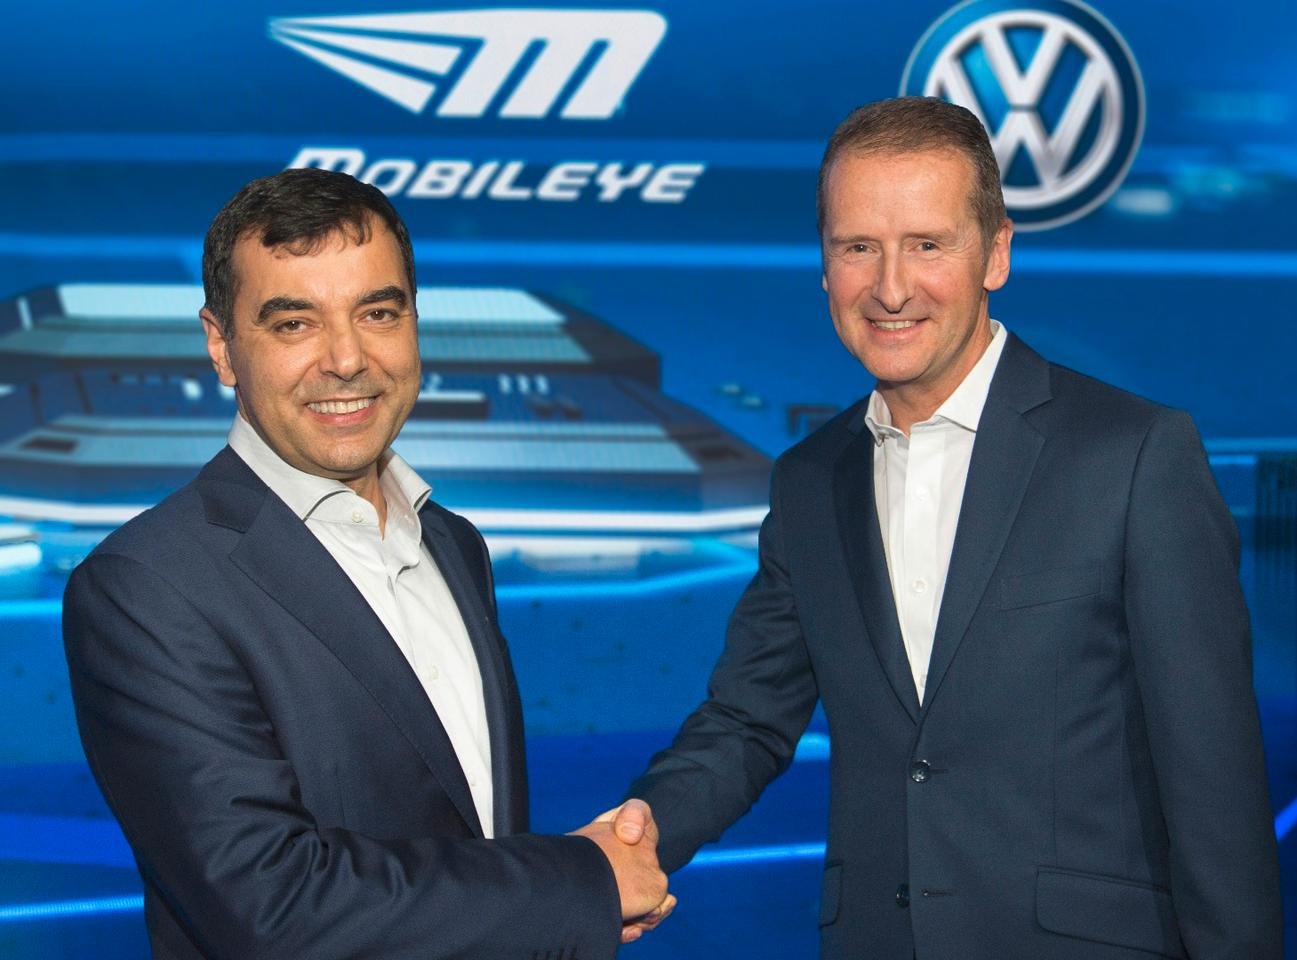 Left to right: Prof. Amnon Shashua (Chairman Mobileye) and Dr. Herbert Diess (Chairman Volkswagen brand)